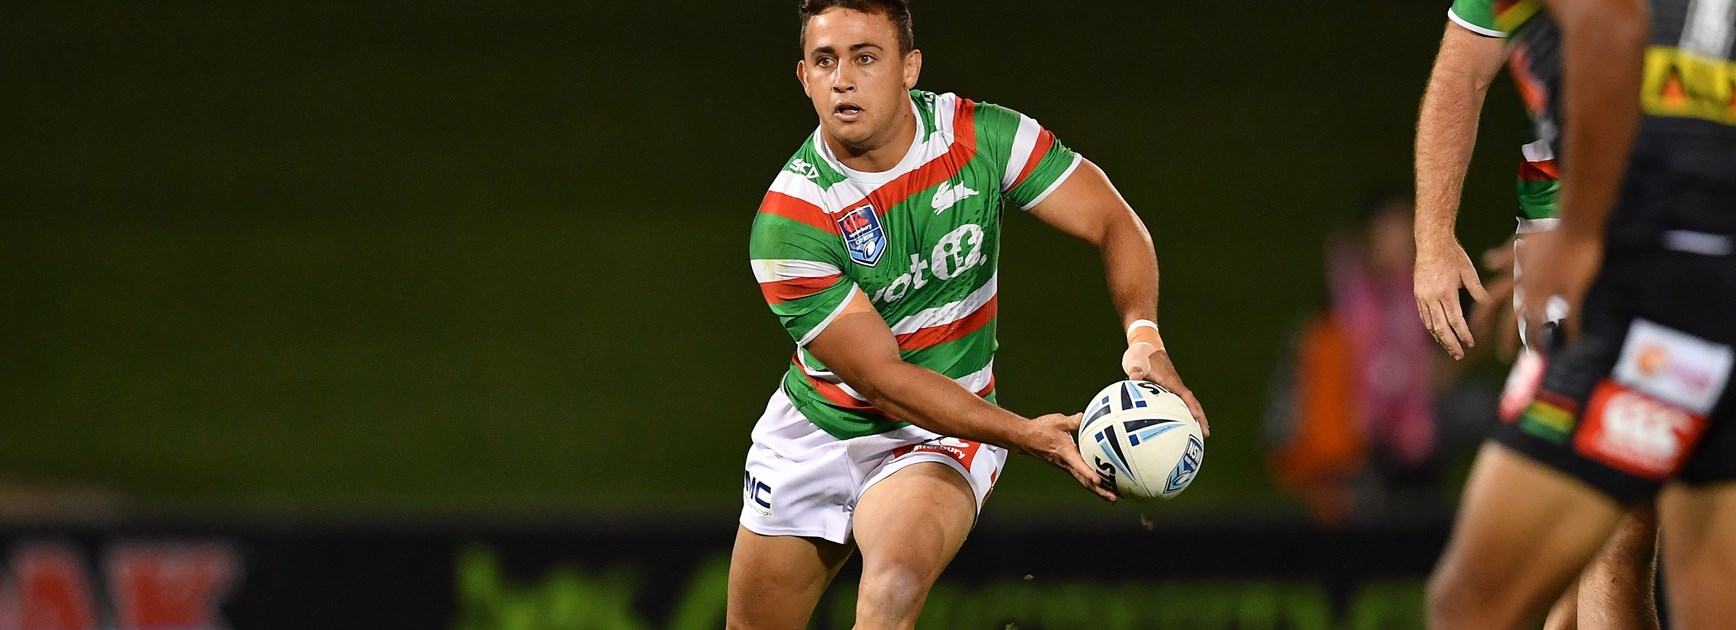 Billy Brittain joins the Dragons for 2020 after a standout season with South Sydney last year.